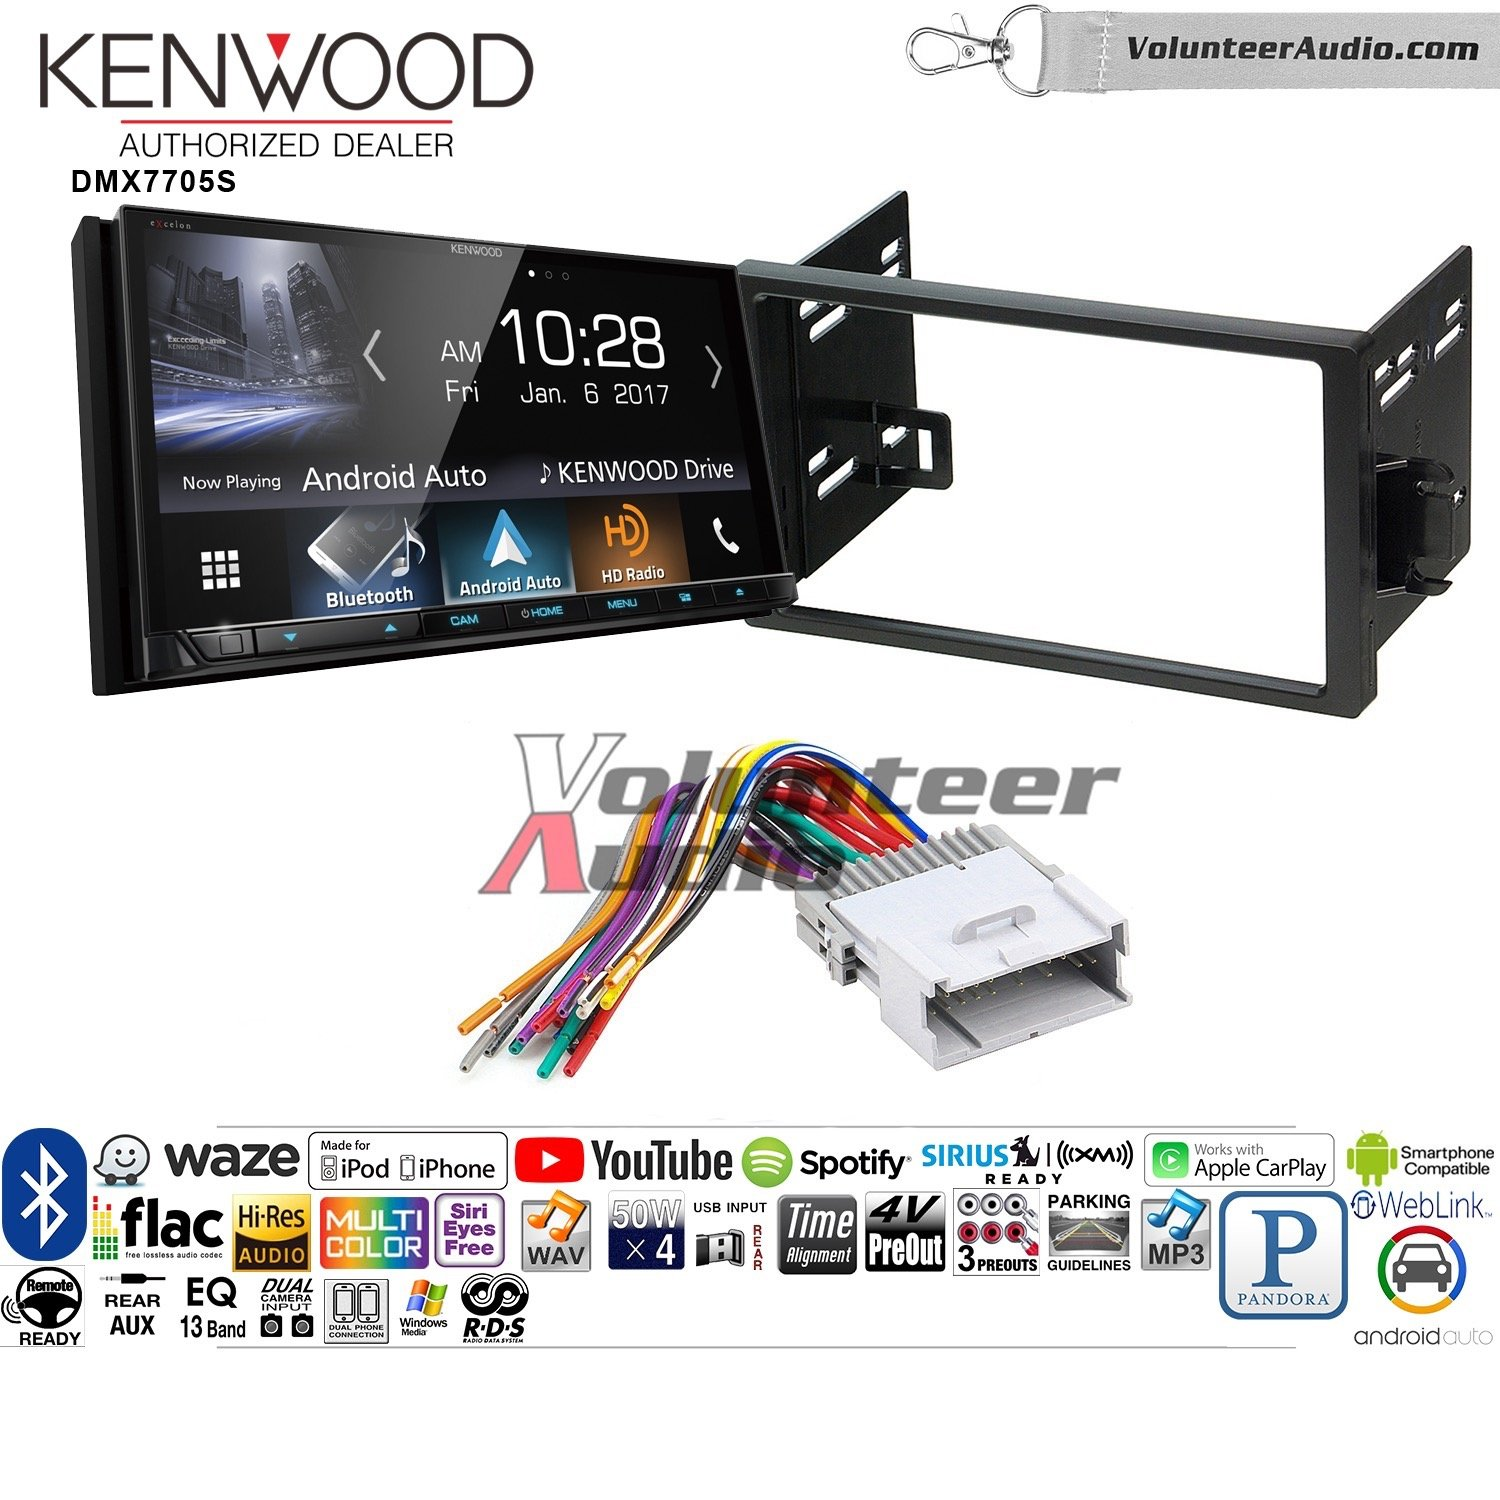 Volunteer Audio Kenwood DMX7705S Double Din Radio Install Kit with Apple CarPlay Android Auto Bluetooth Fits 2007-2011 Chevrolet Aveo